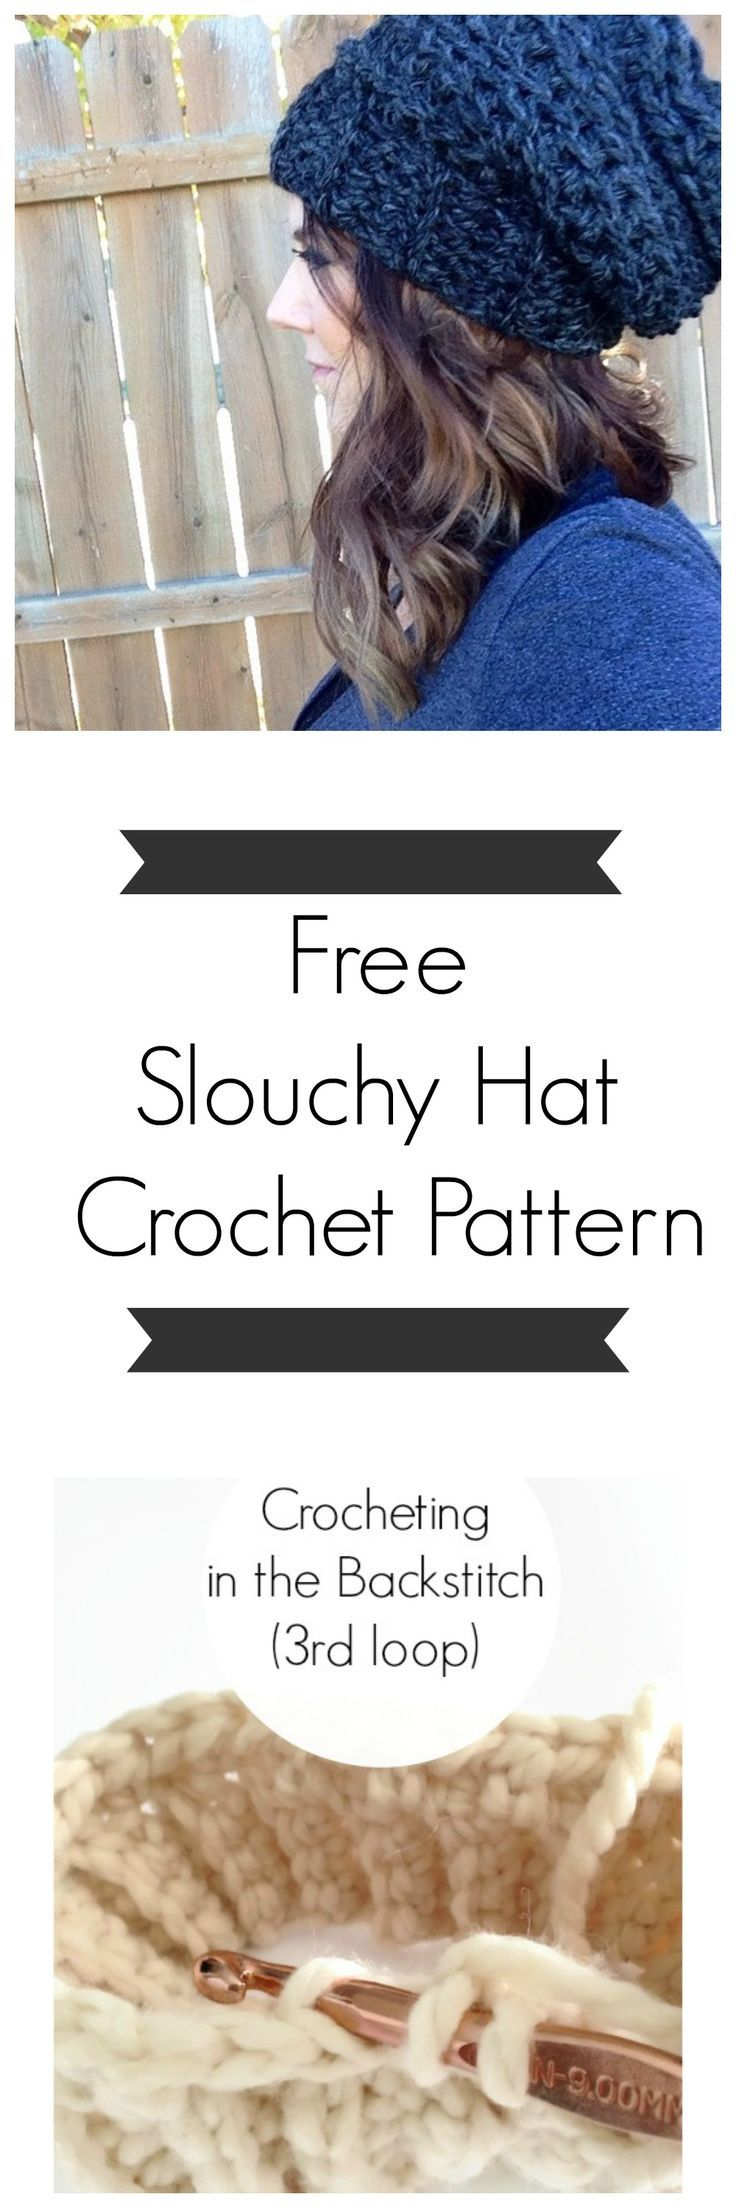 slouchy hat crochet pattern free This pattern uses chunky yarn & can be made in an hour. Crochet slouchy beanie pattern